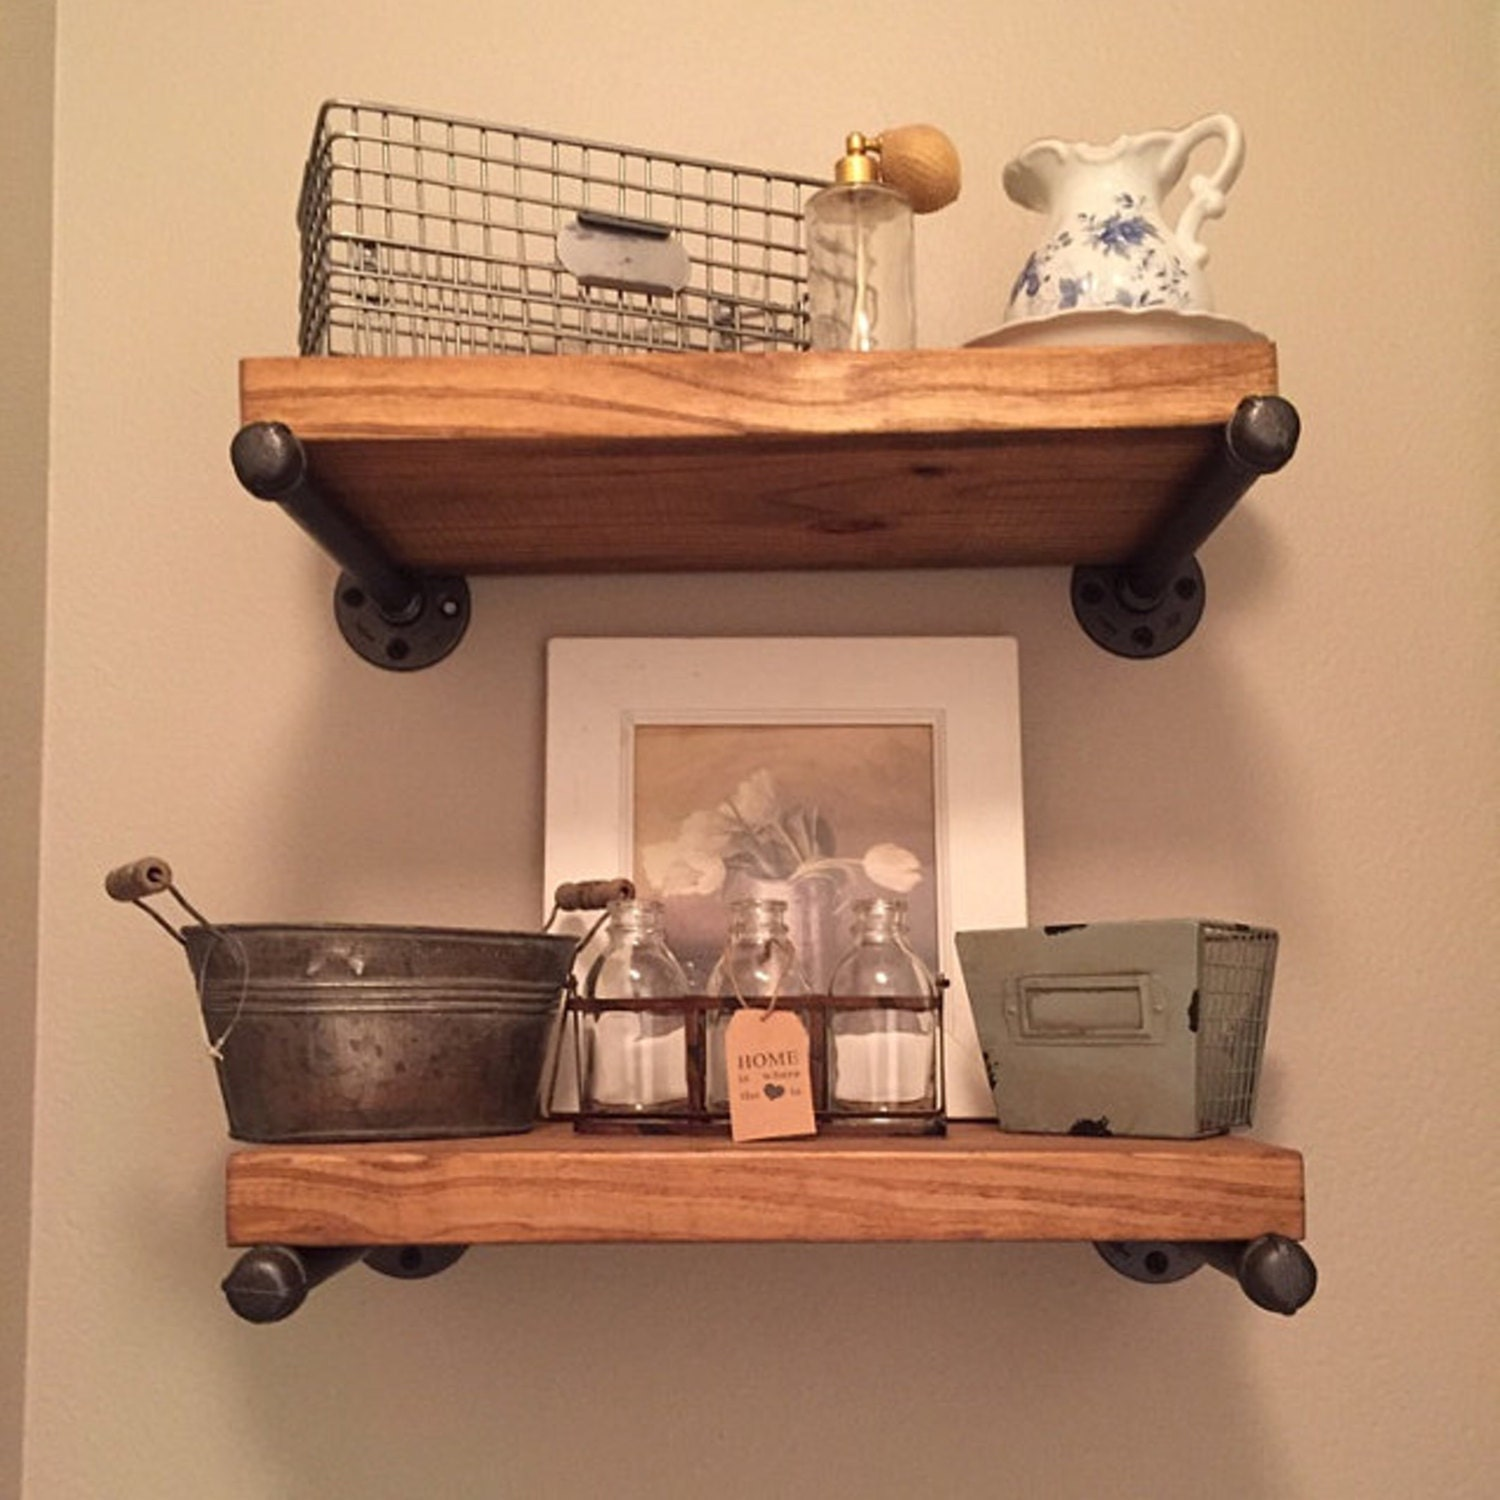 12 deep industrial floating shelf rustic wood and pipe 10 deep industrial floating shelves rustic wood and pipe shelf wall shelf amipublicfo Choice Image